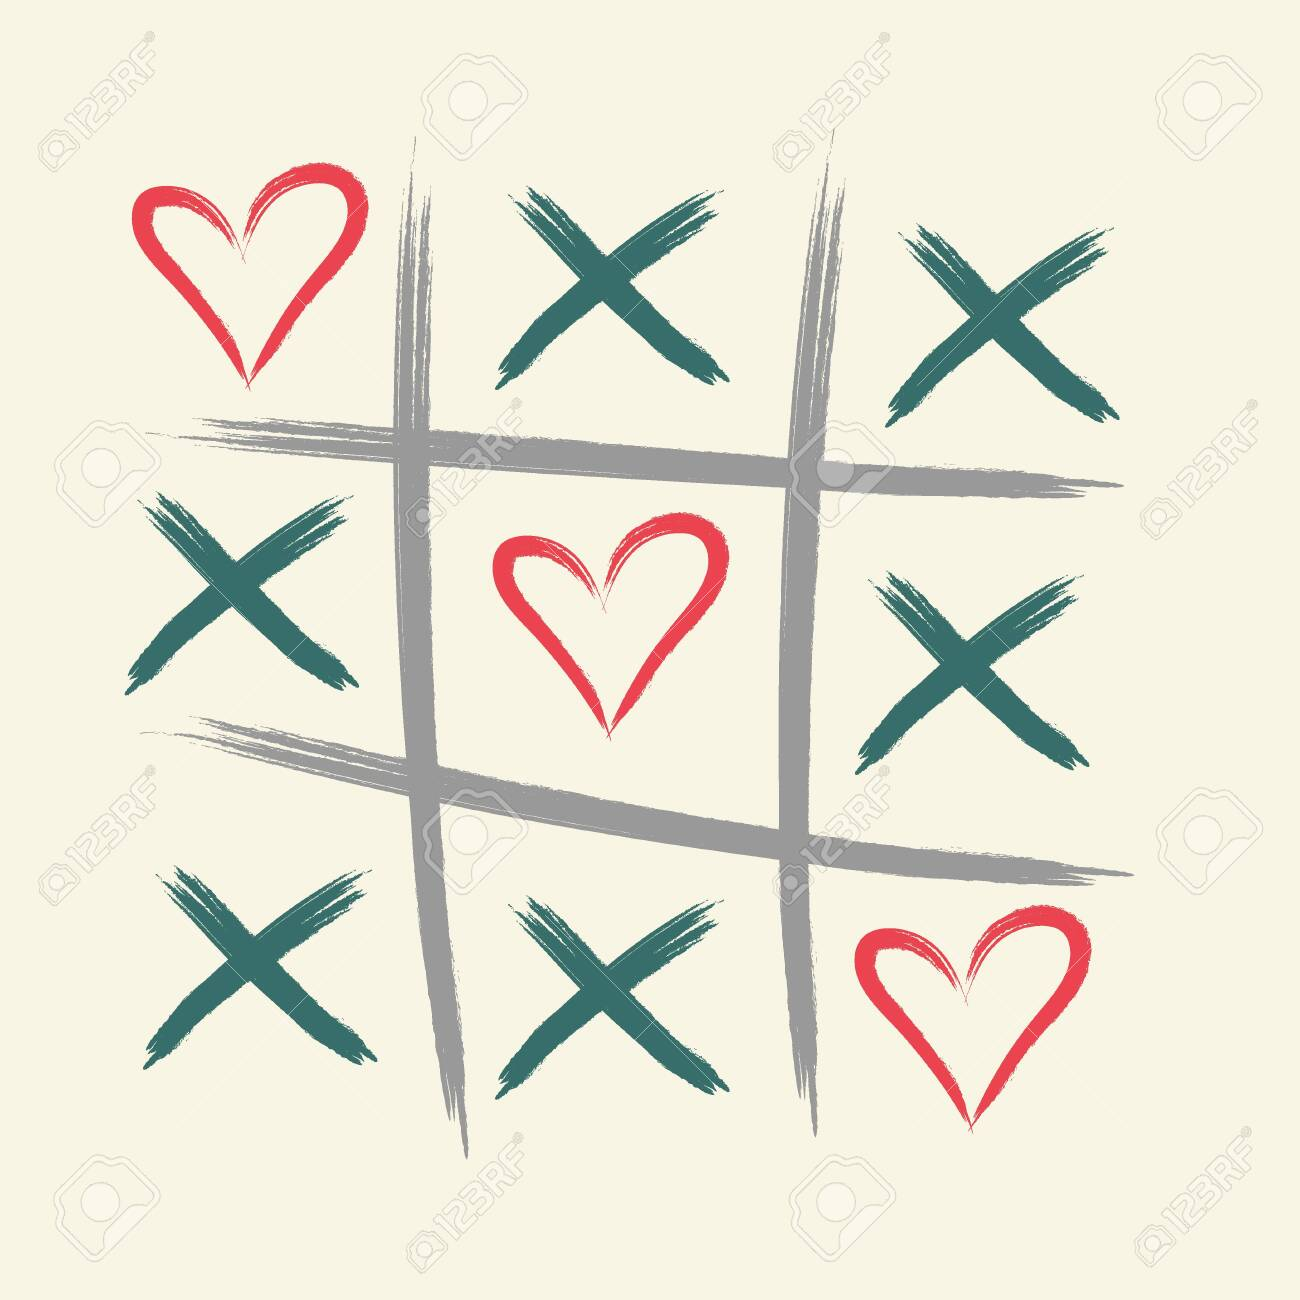 Tic tac toe game with criss cross and heart sign mark. XOXO. Hand drawn brush. Happy Valentines day card. - 143171056